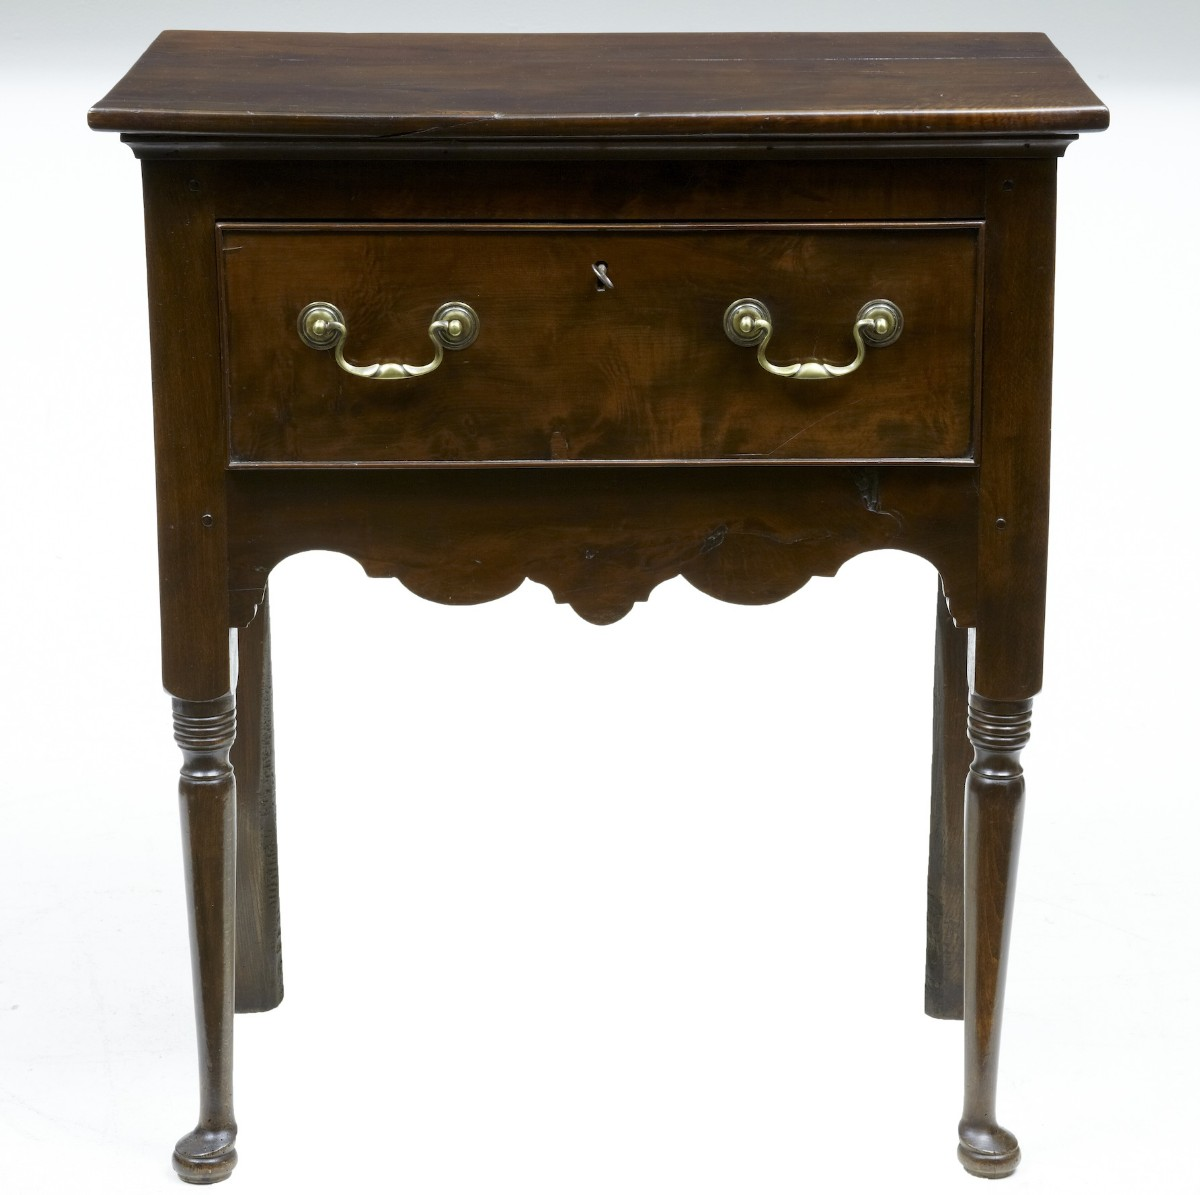 18th century antique small yew wood side table dresser for Small wooden side table